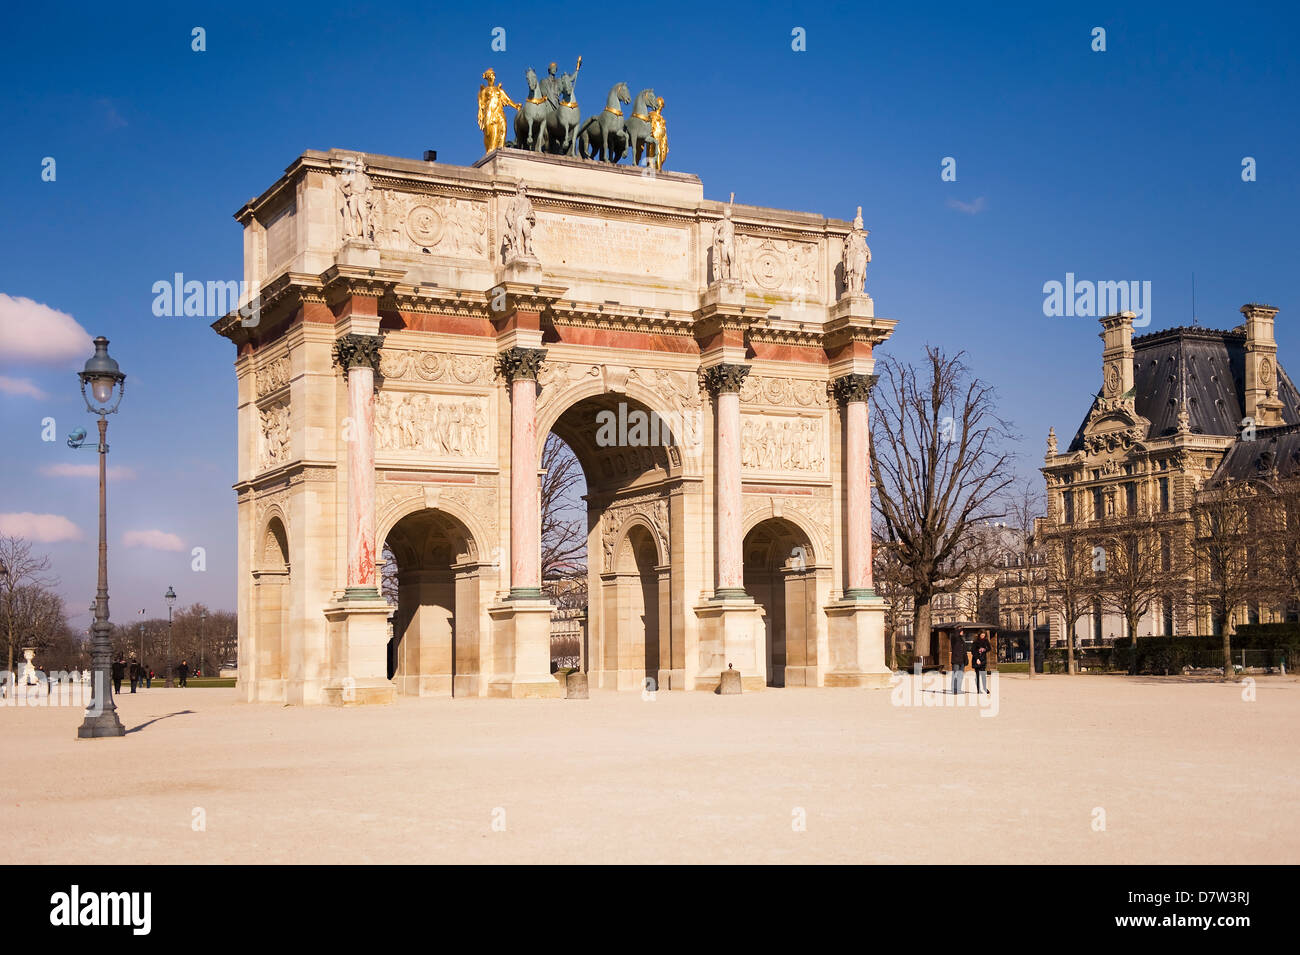 Arc du Carrousel, Place du Carrousel, Paris, France - Stock Image